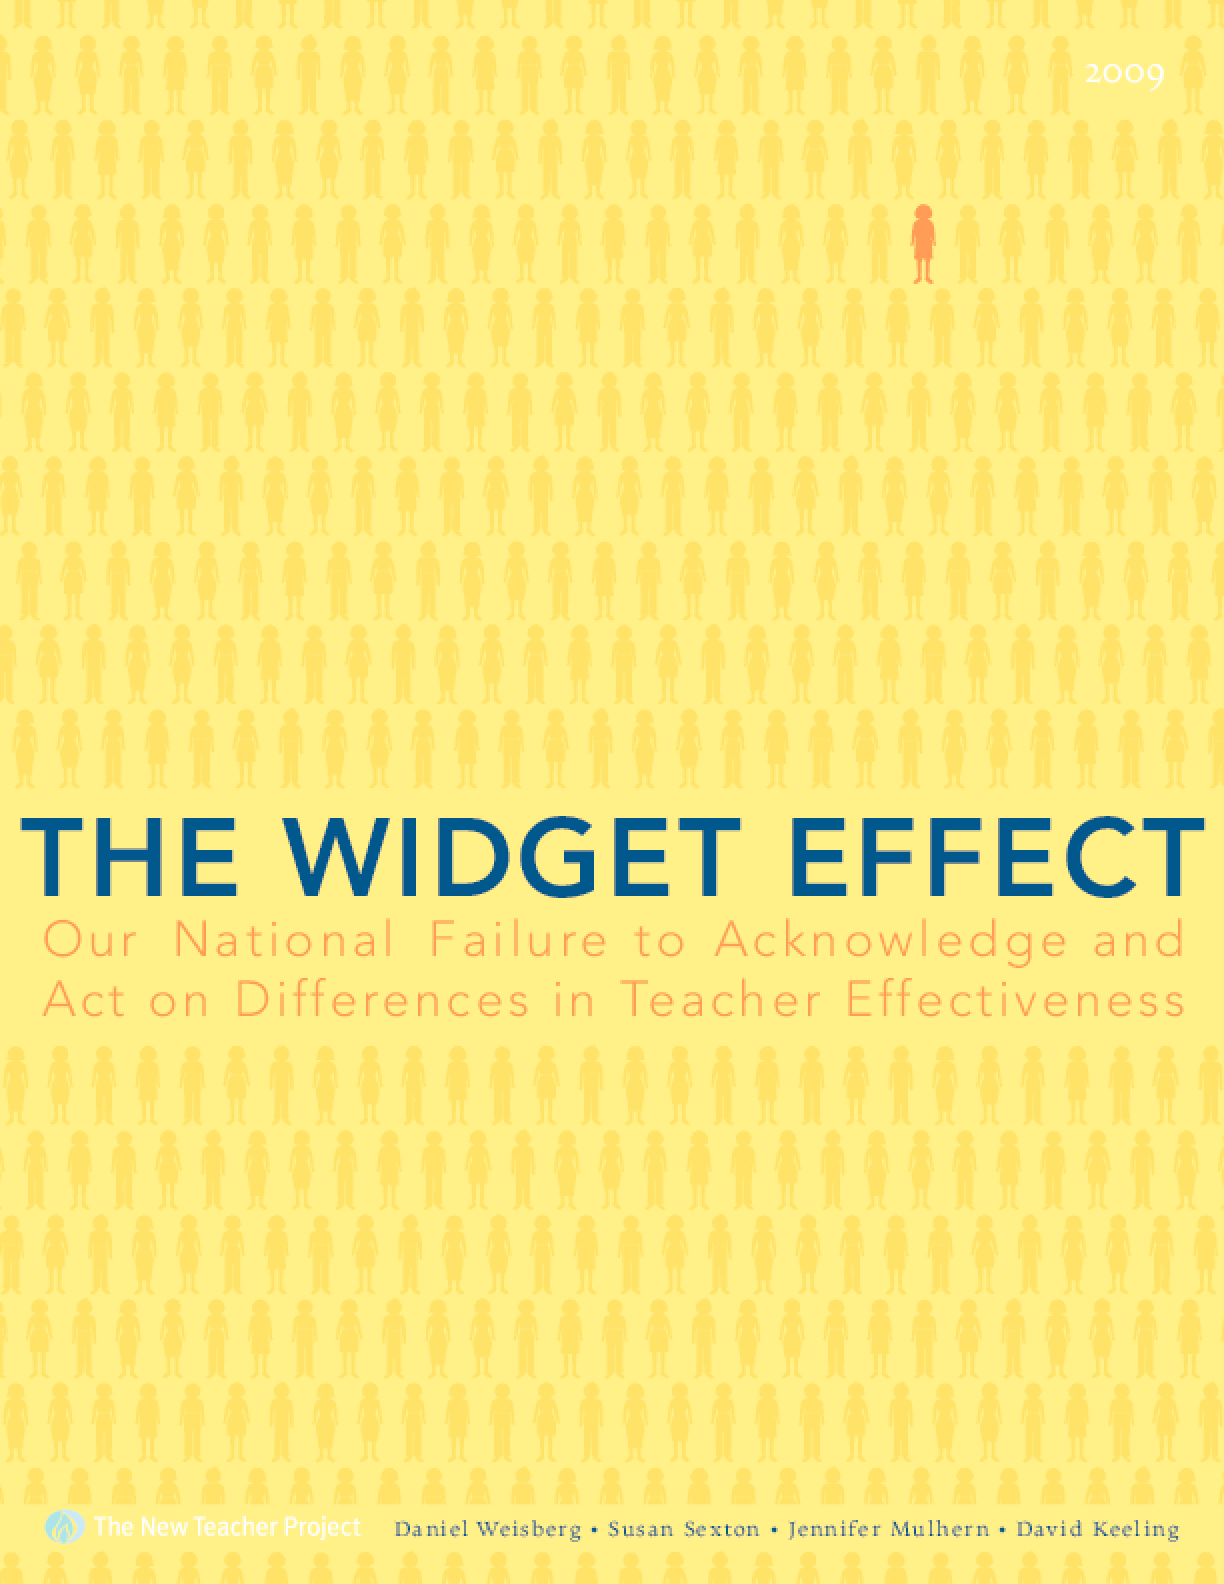 The Widget Effect: Our National Failure to Acknowledge and Act on Differences in Teacher Effectiveness